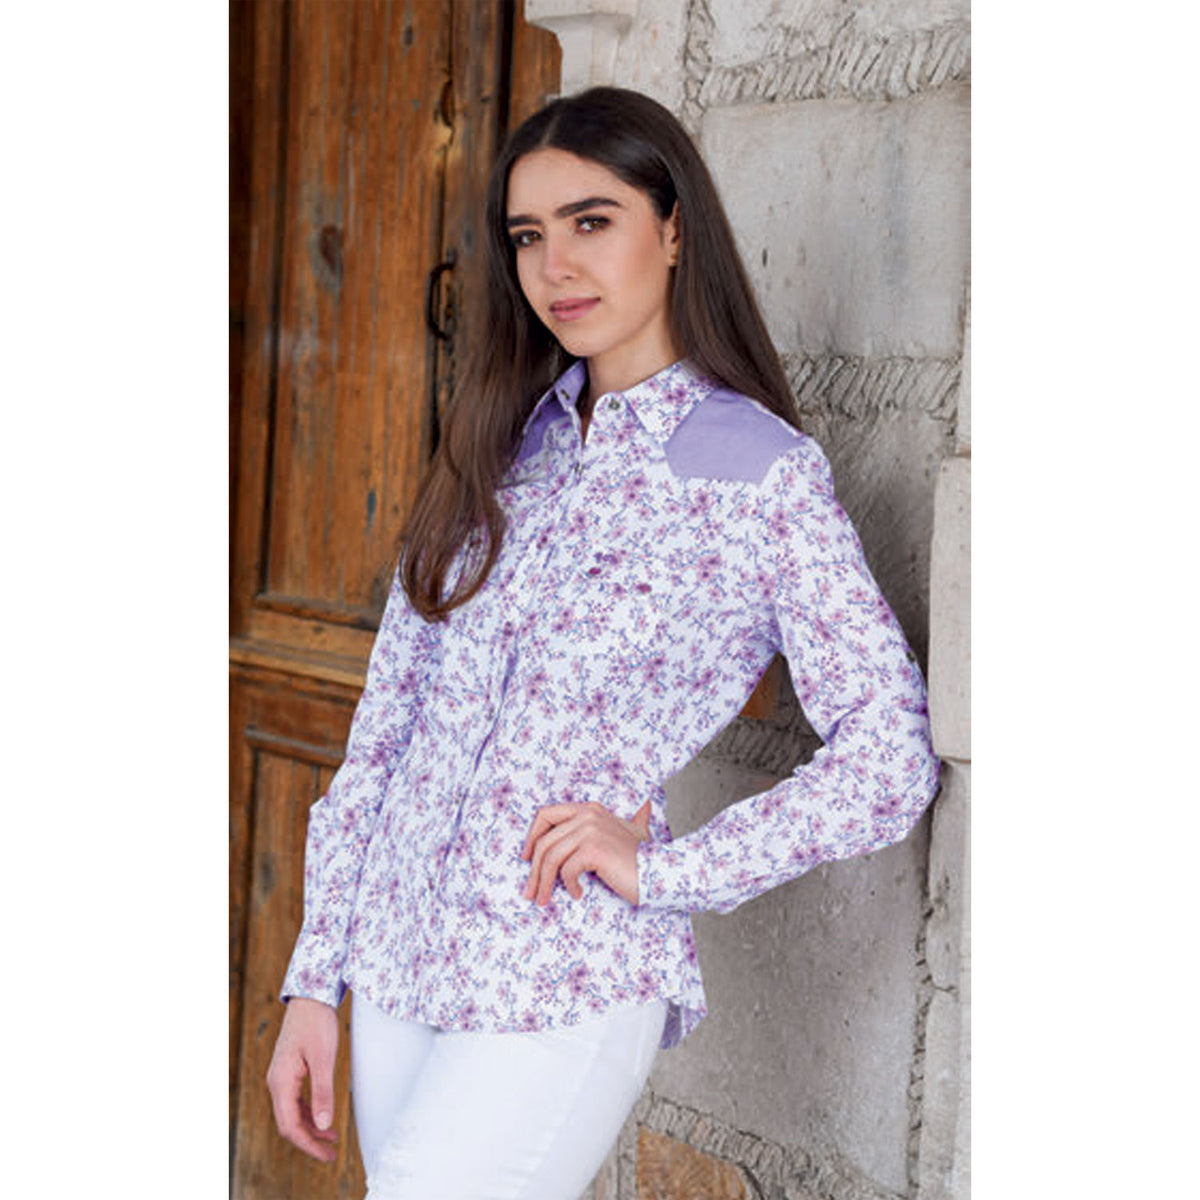 Women's Western Shirt WD587-590